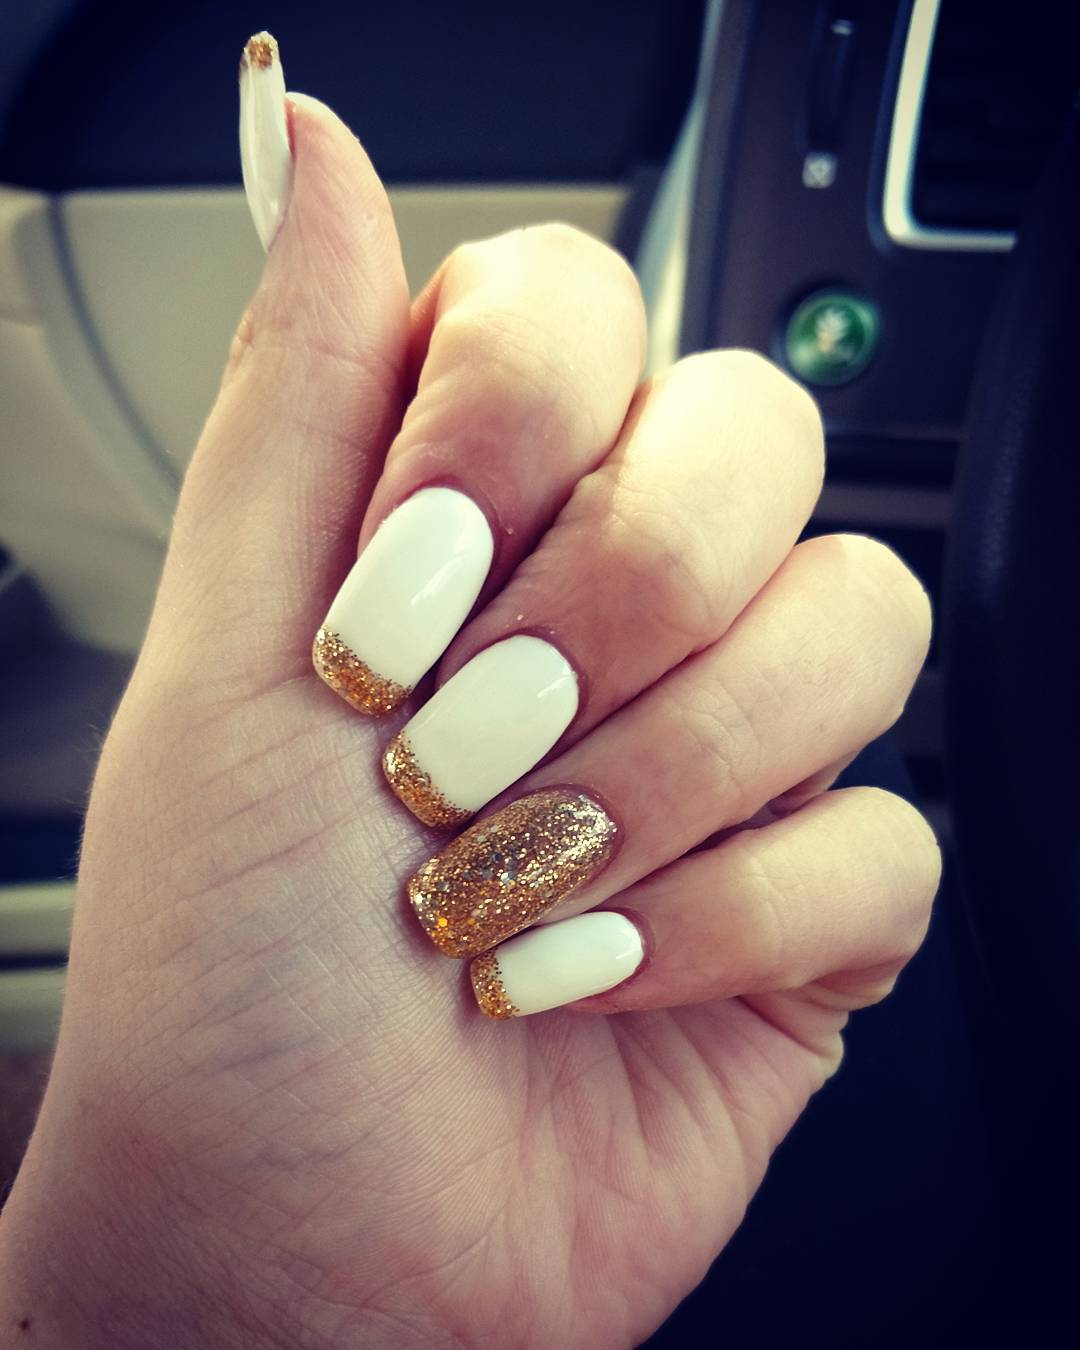 40 Manicure Inspiration Ideas with These Classy Nail Designs